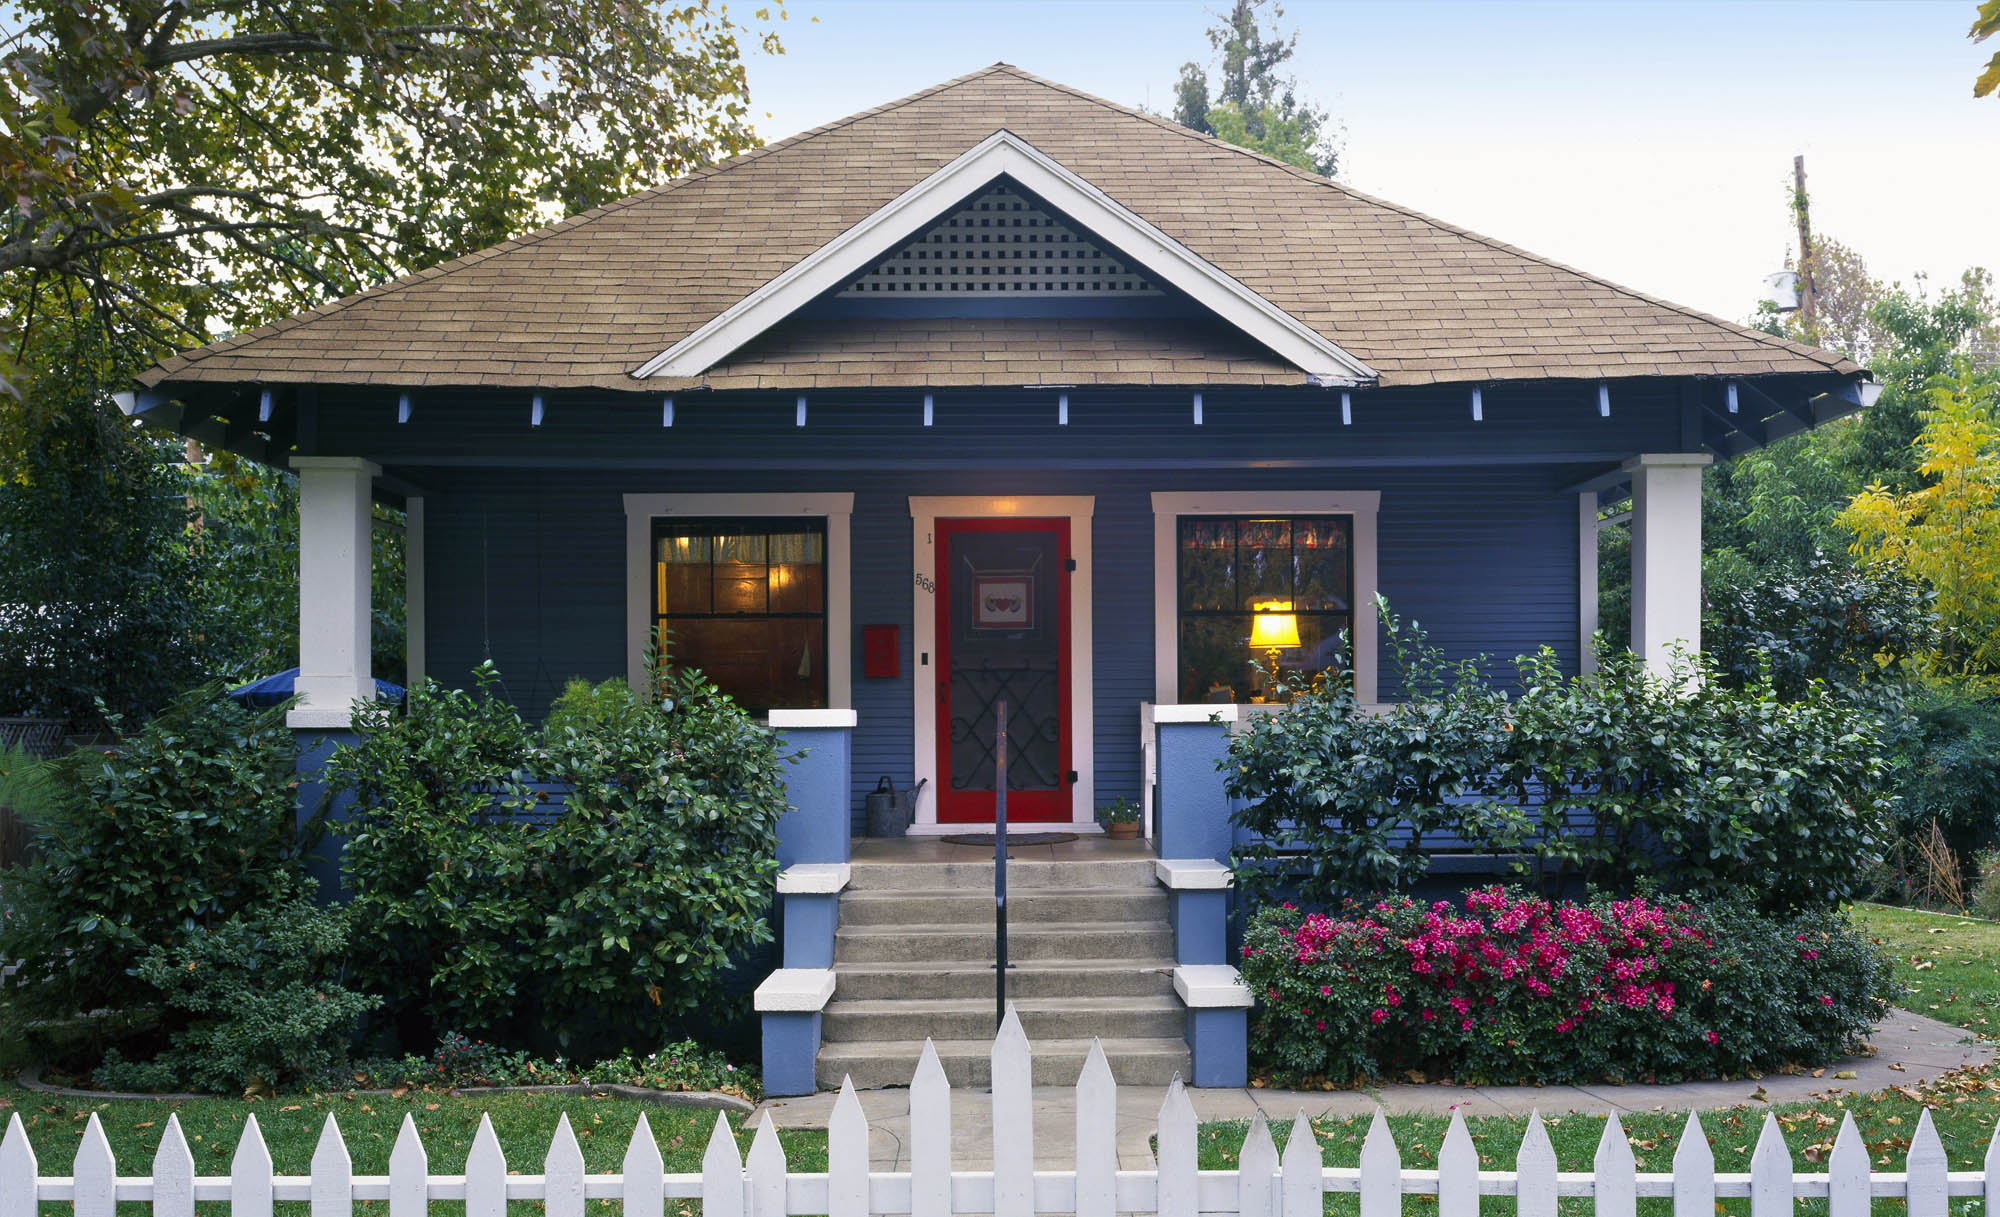 small house color schemes - blue siding with white trim and a red door